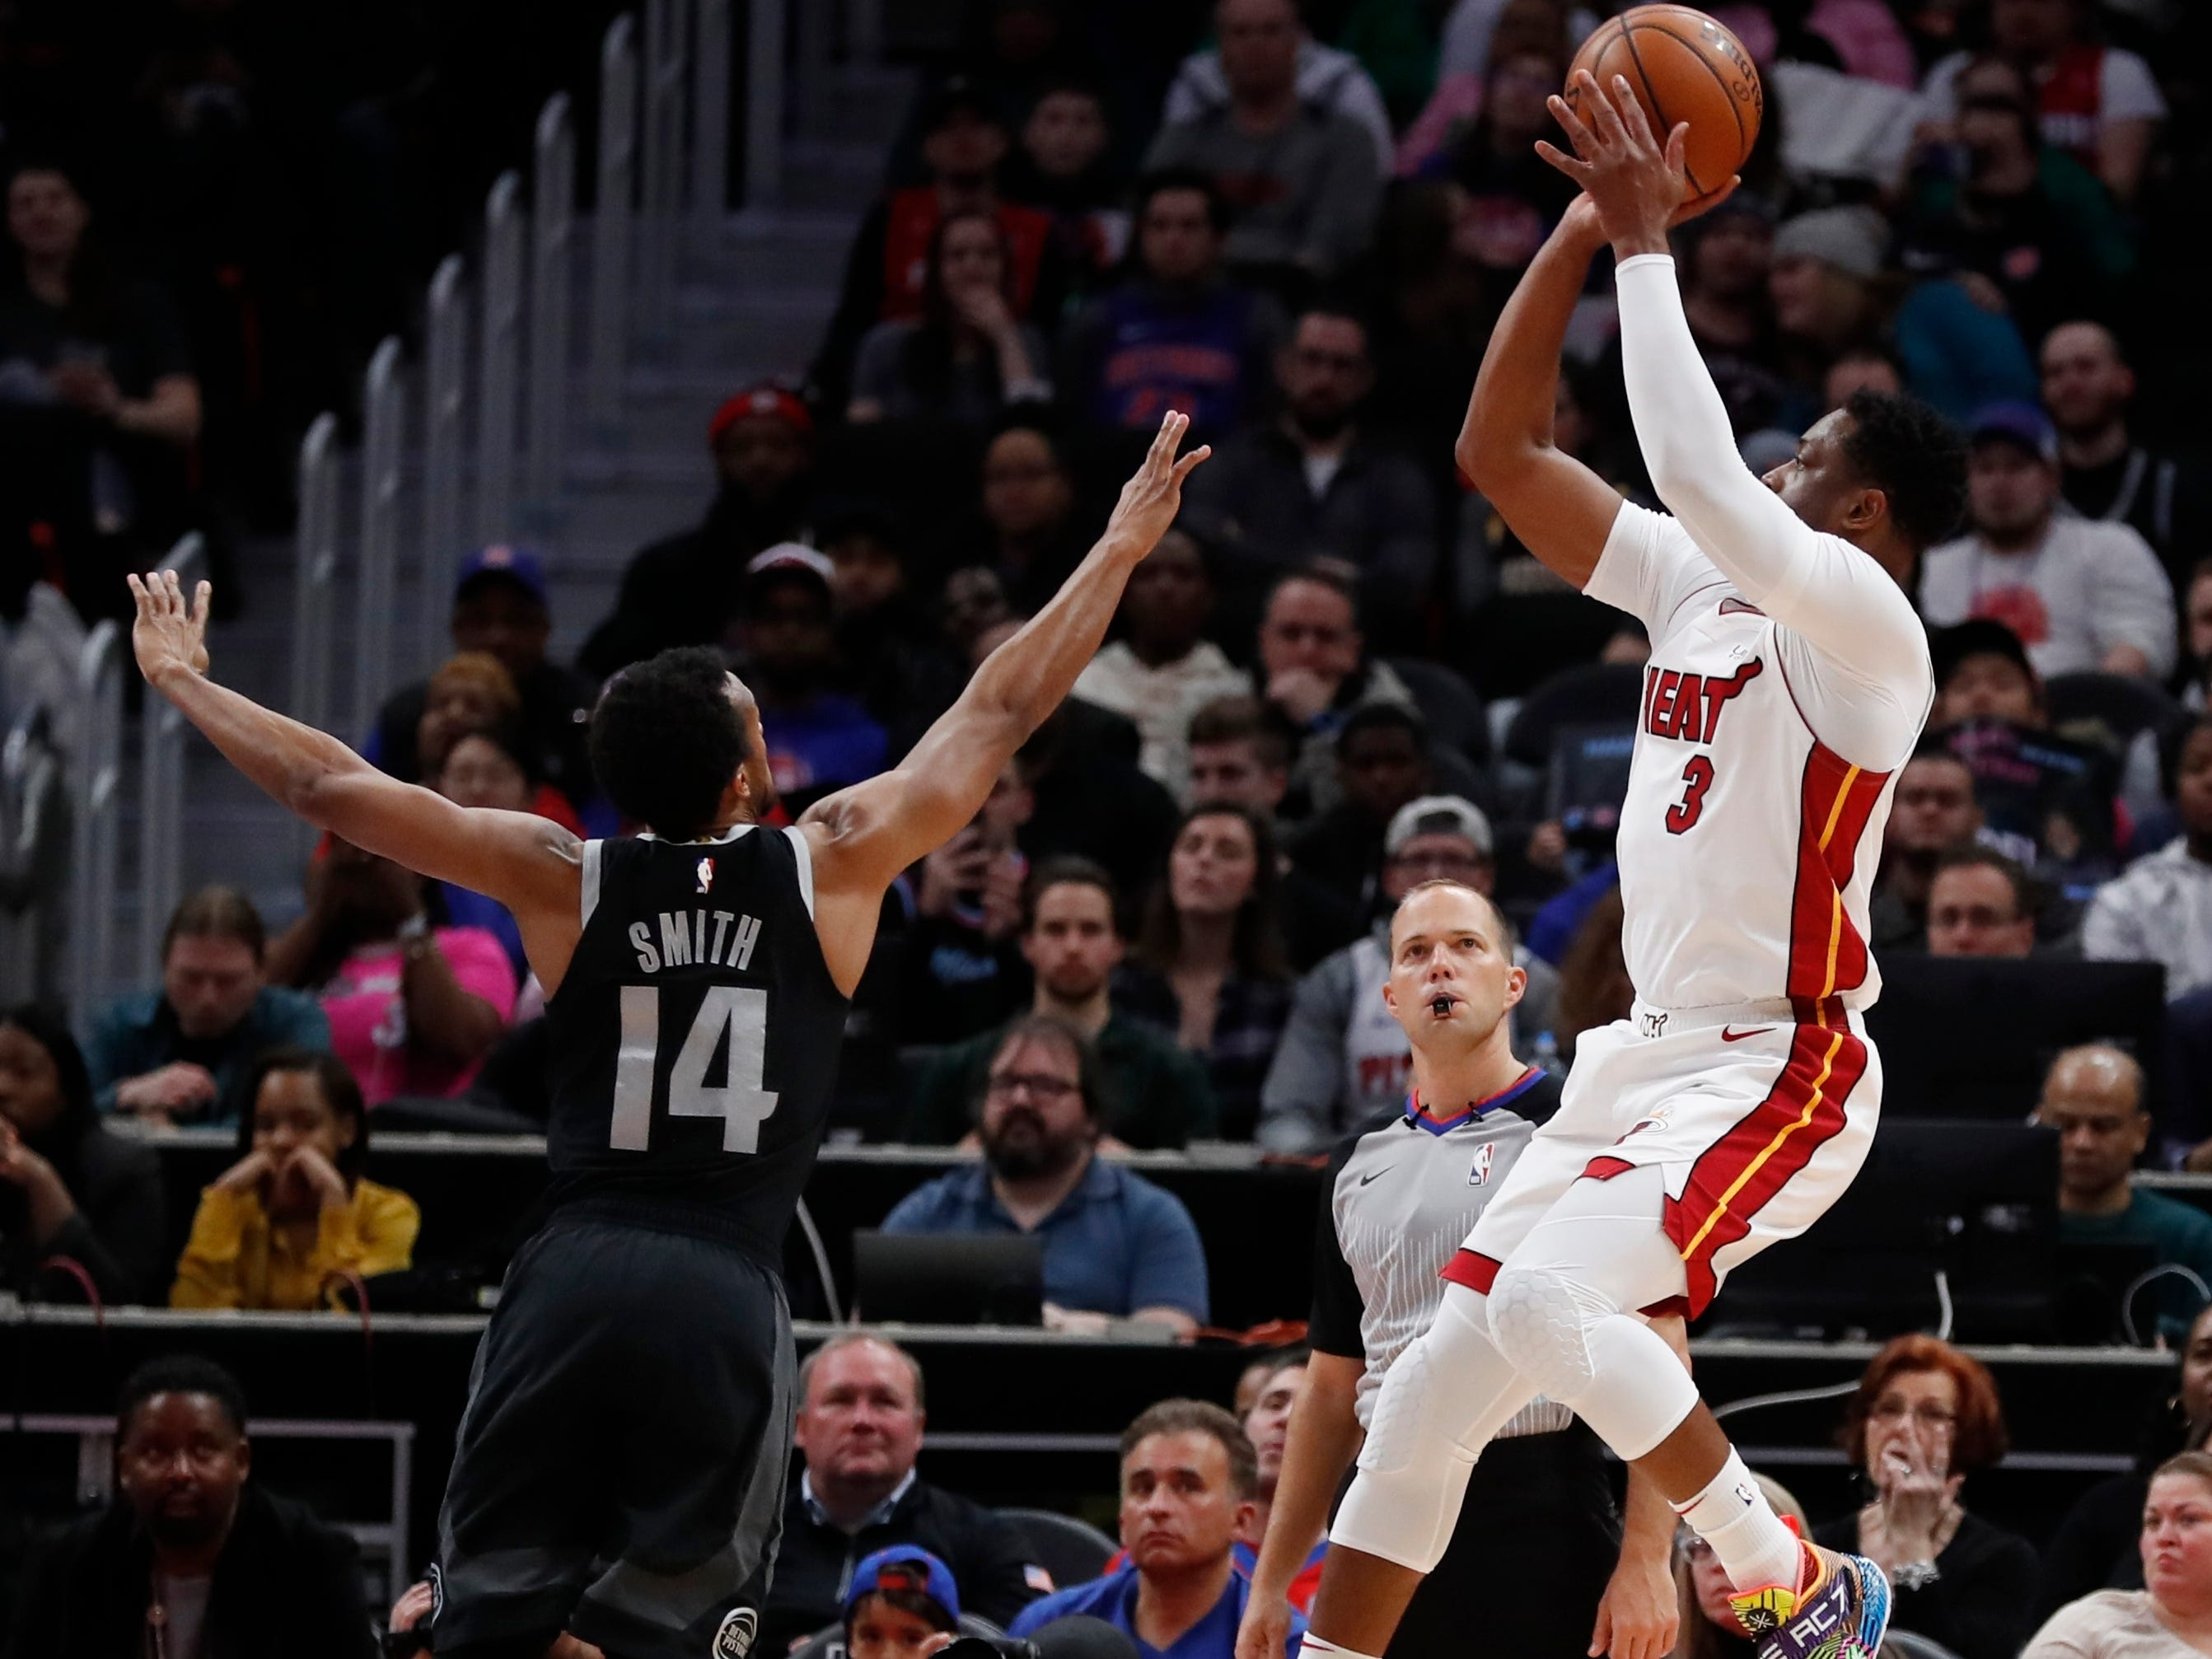 Miami Heat guard Dwyane Wade (3) shoots as Detroit Pistons guard Ish Smith (14) defends during the first half.